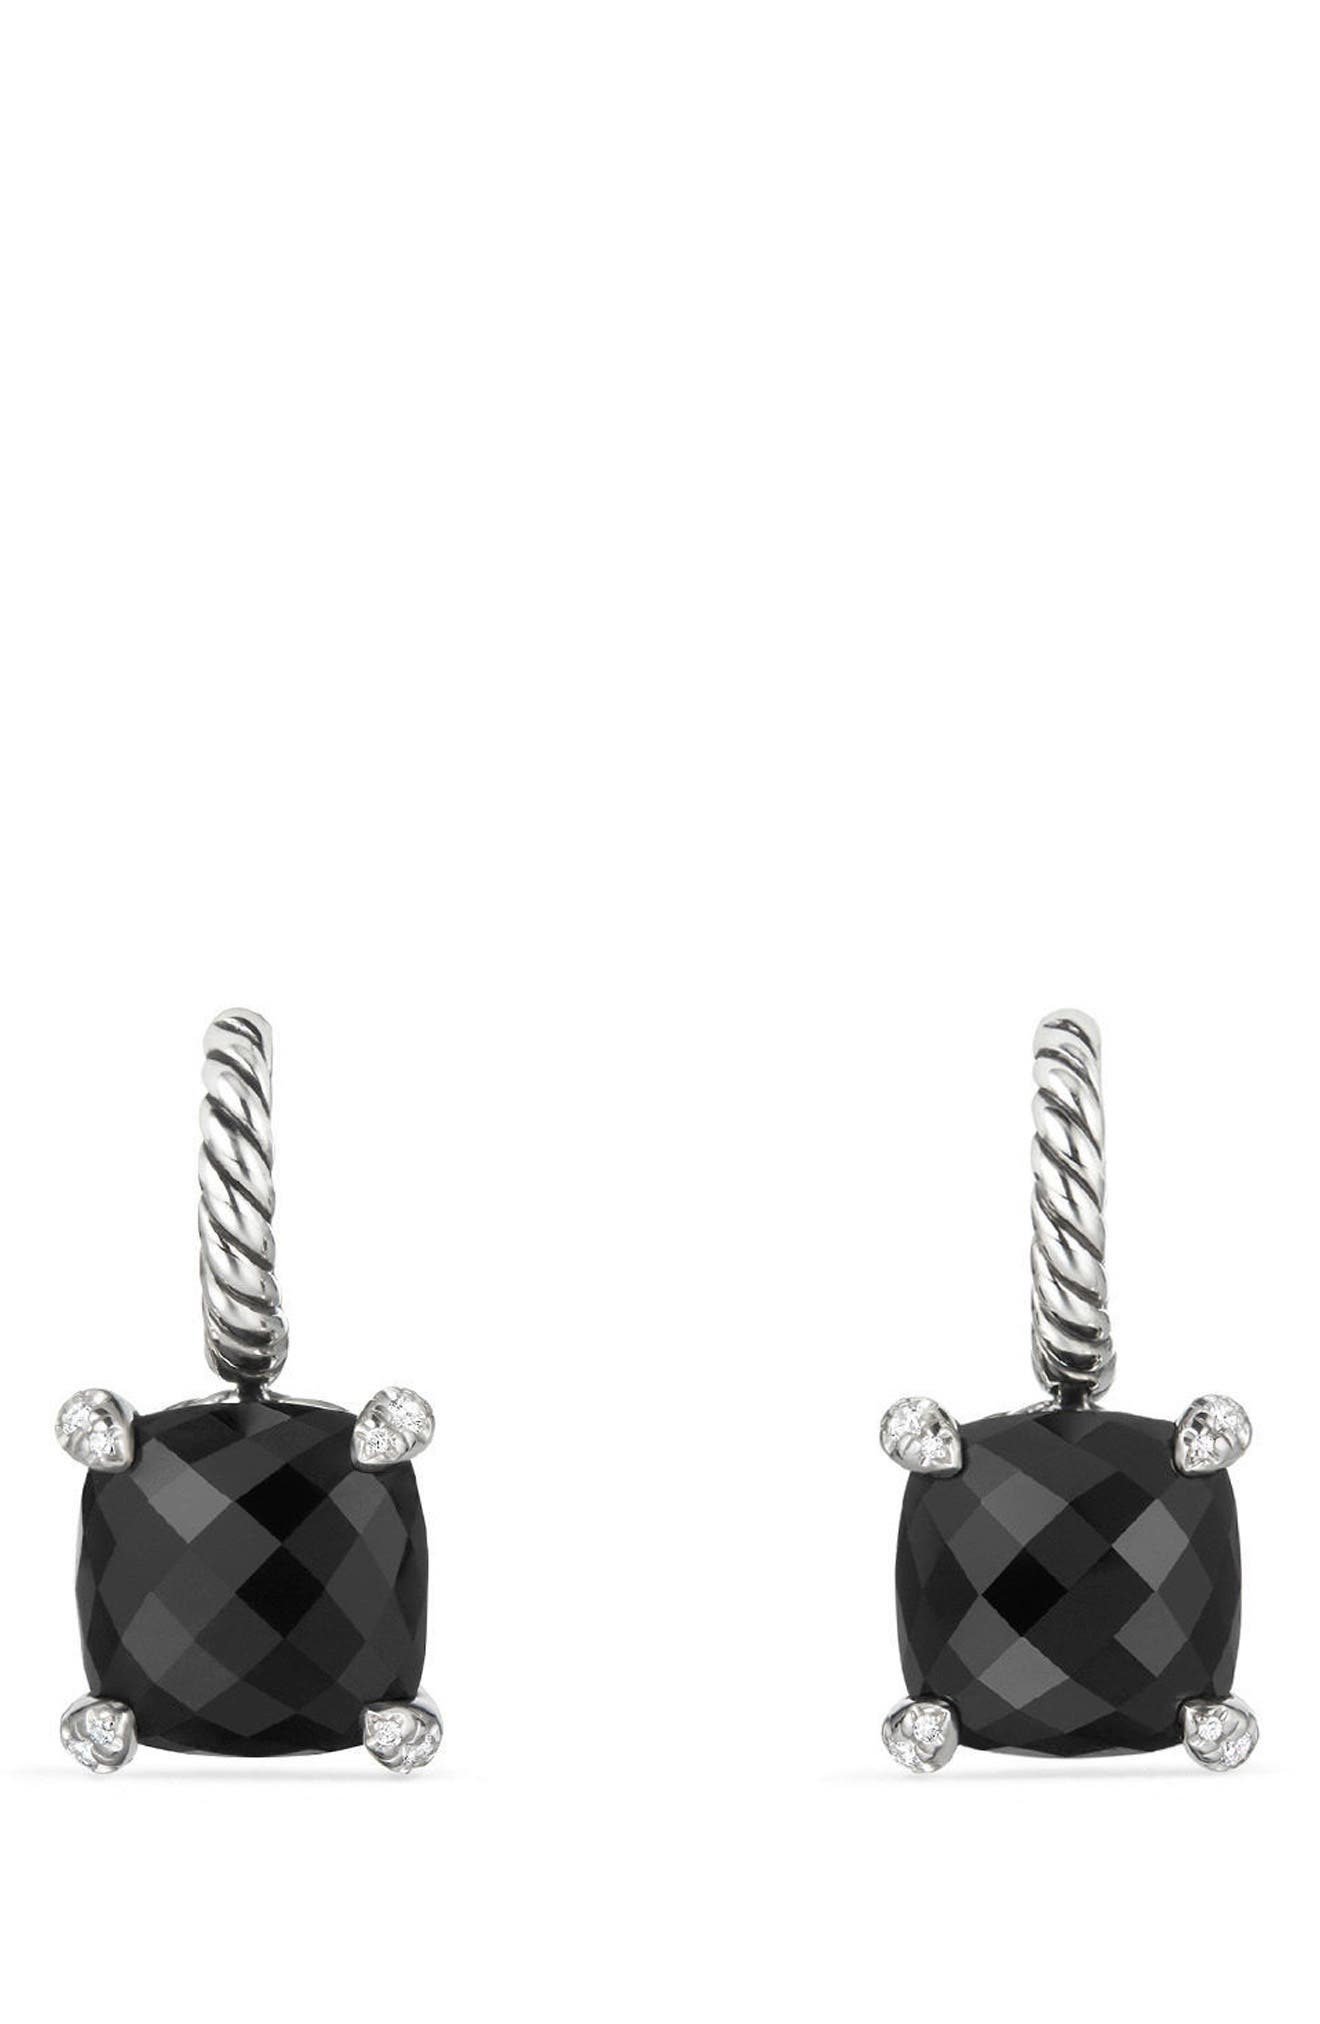 Main Image - David Yurman Châtelaine Drop Earrings with Diamonds